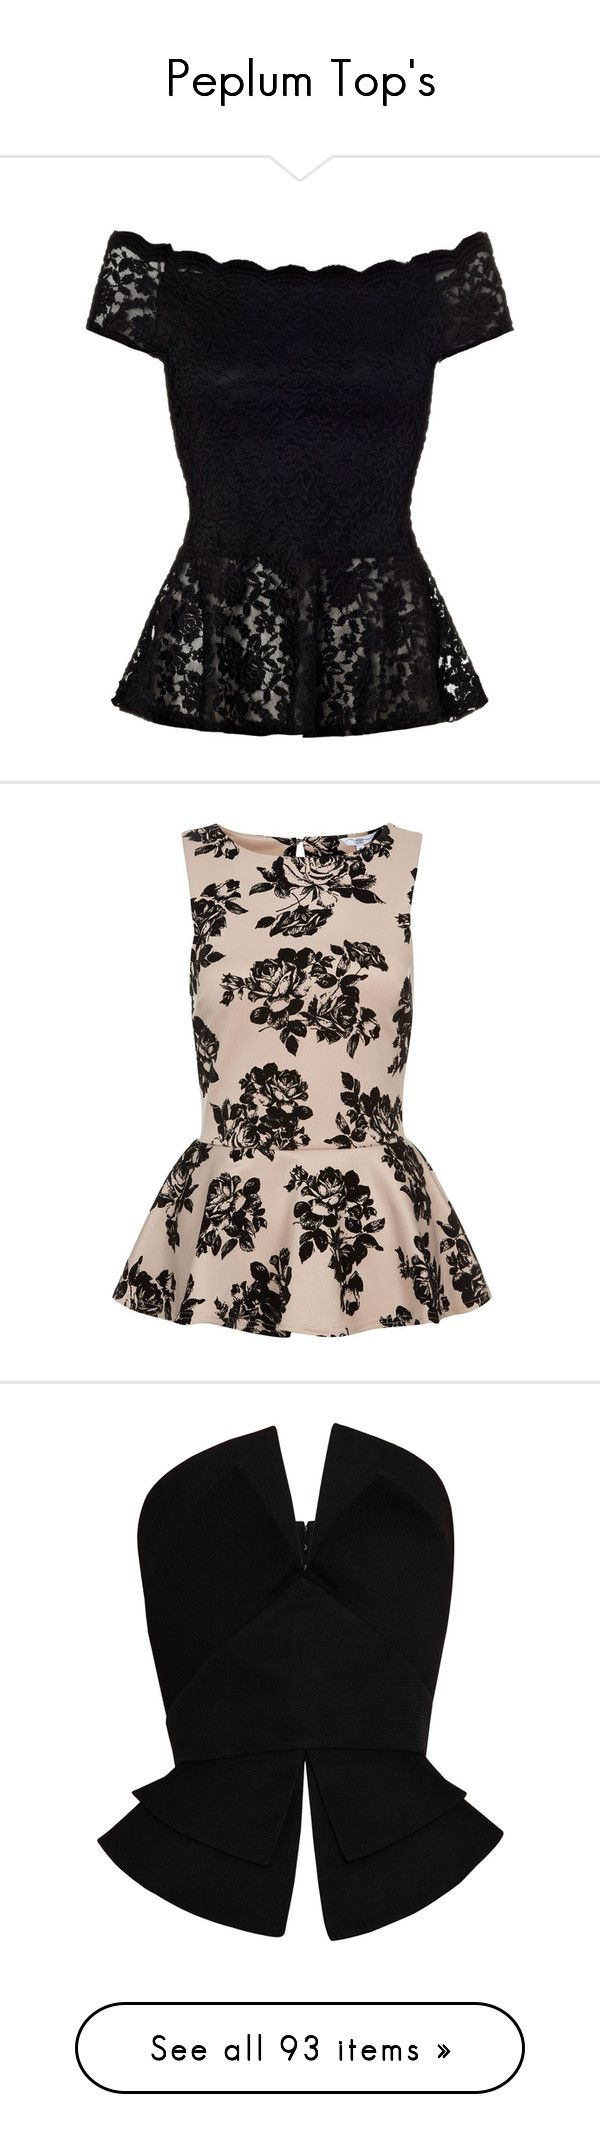 """""""Peplum Top's"""" by elenaloveugg ❤ liked on Polyvore featuring tops, blouses, shirts, blusas, lace blouse, peplum blouse, off the shoulder blouse, black lace top, off the shoulder shirts and peplum"""